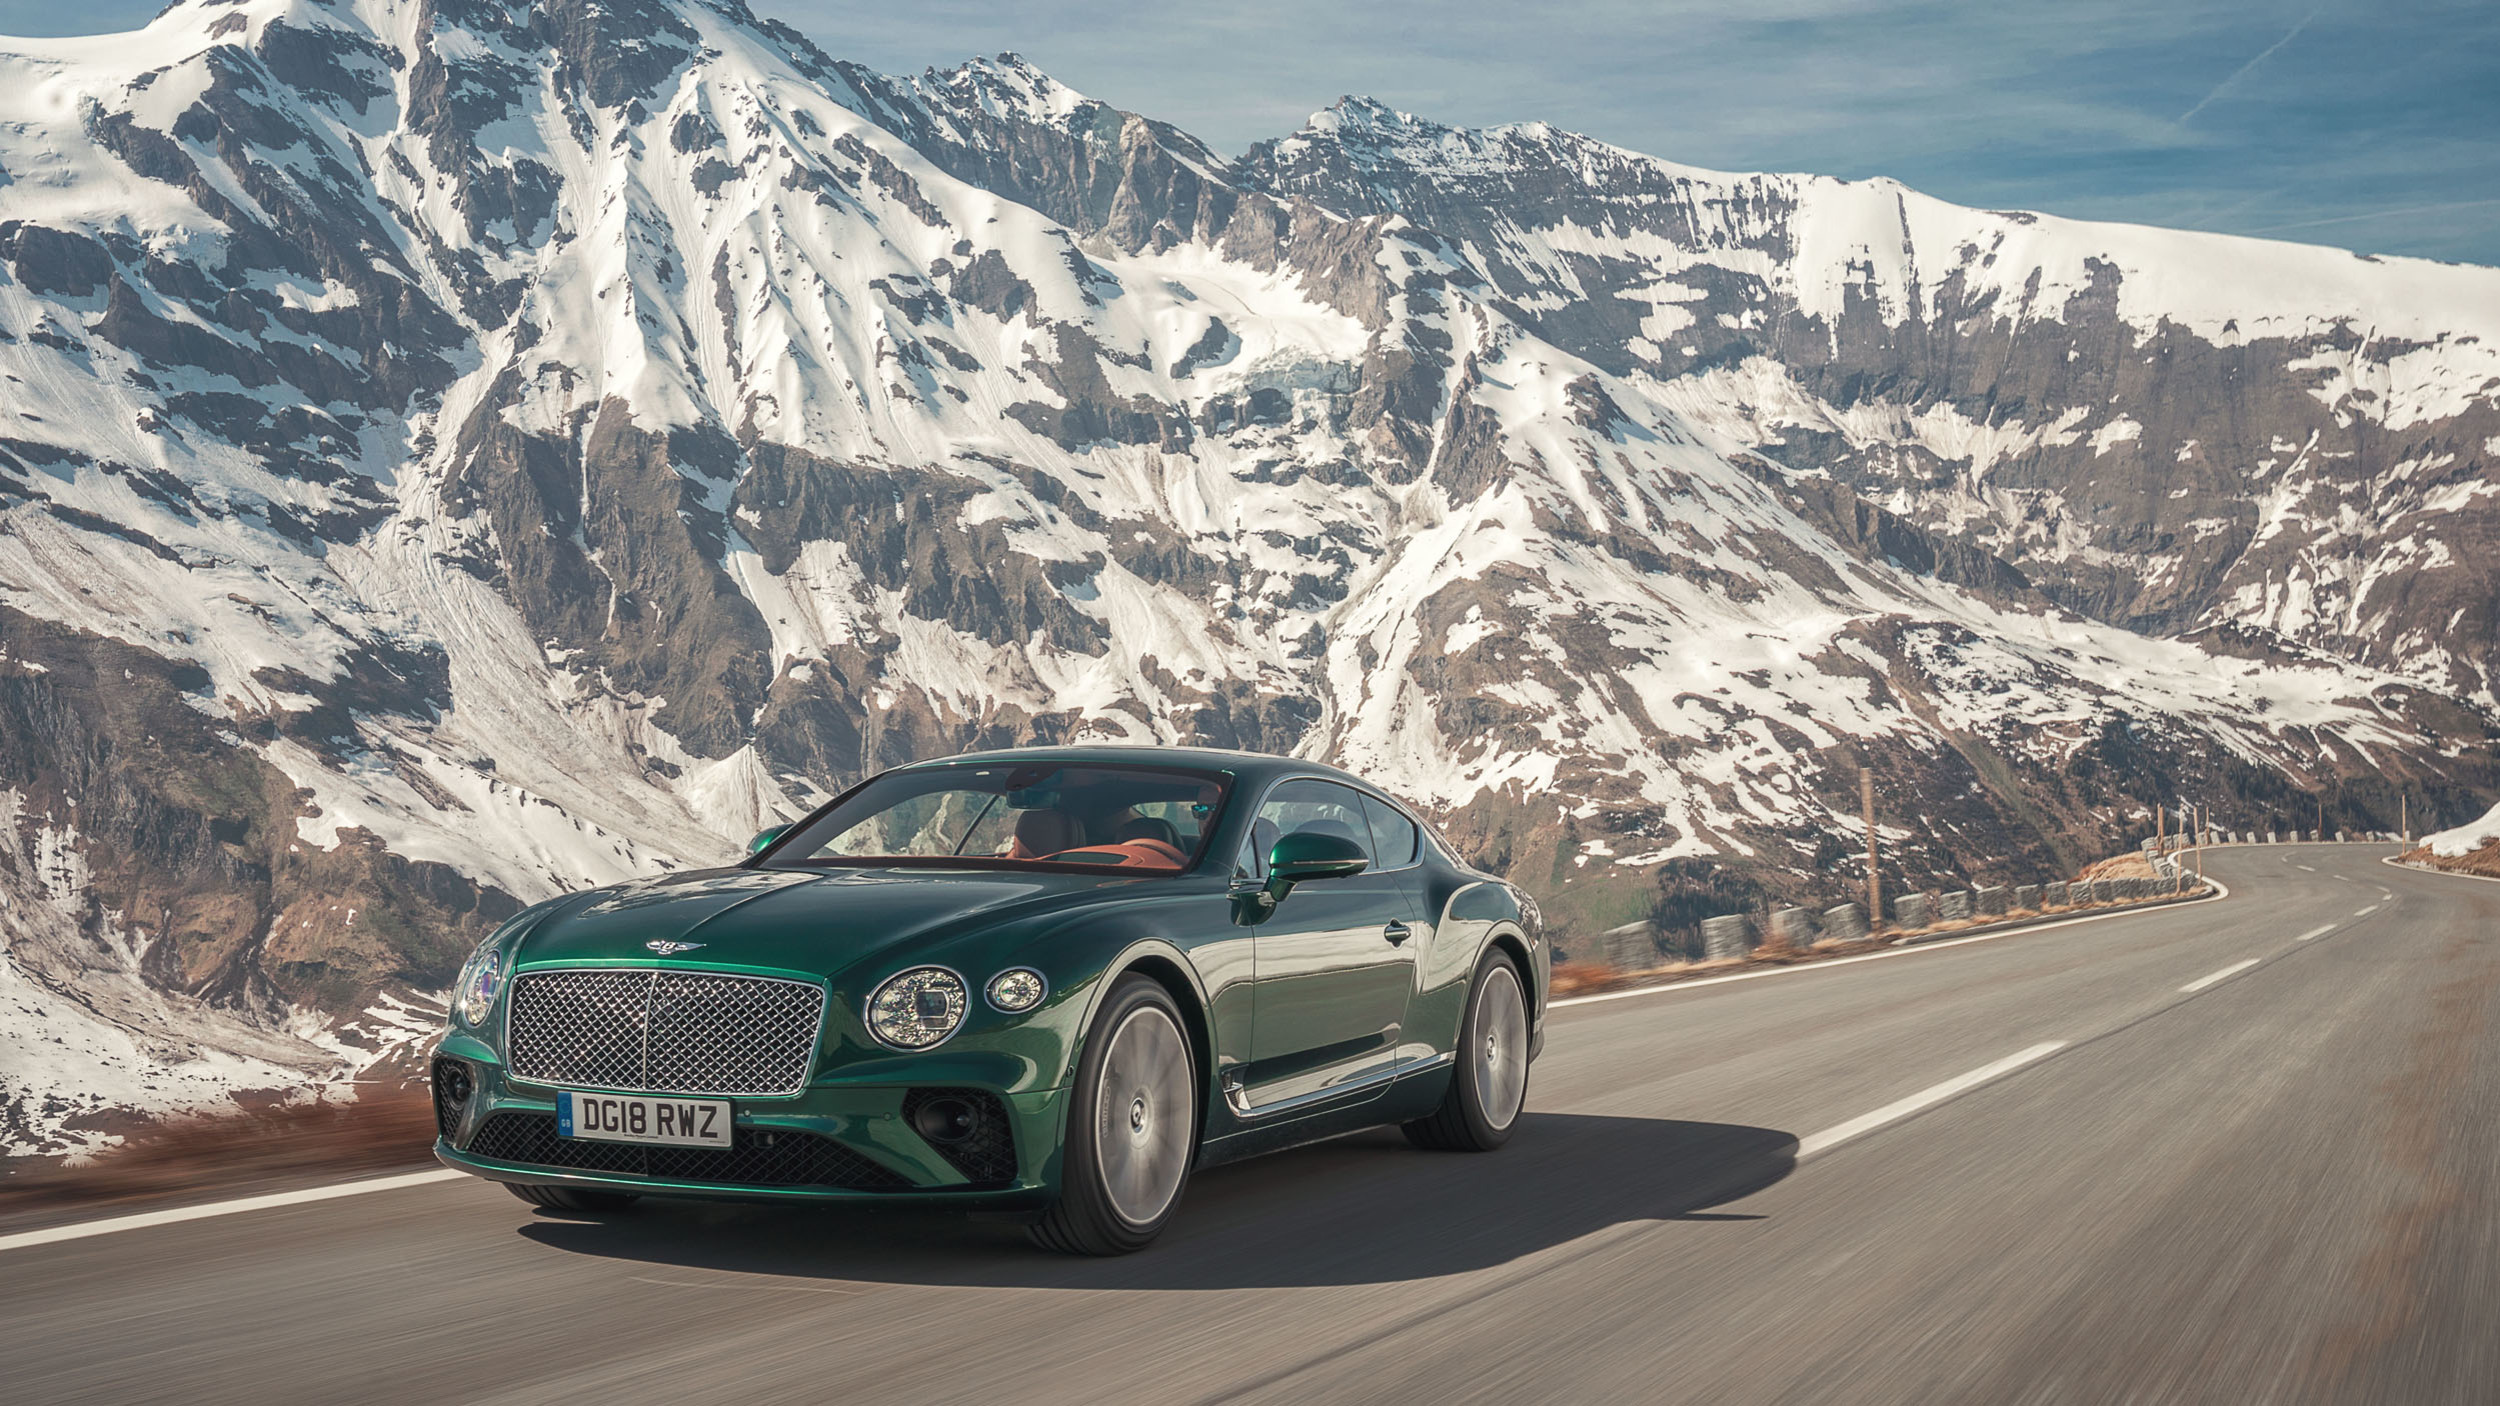 2019 Bentley Continental Gt Road Test Review Autoblog